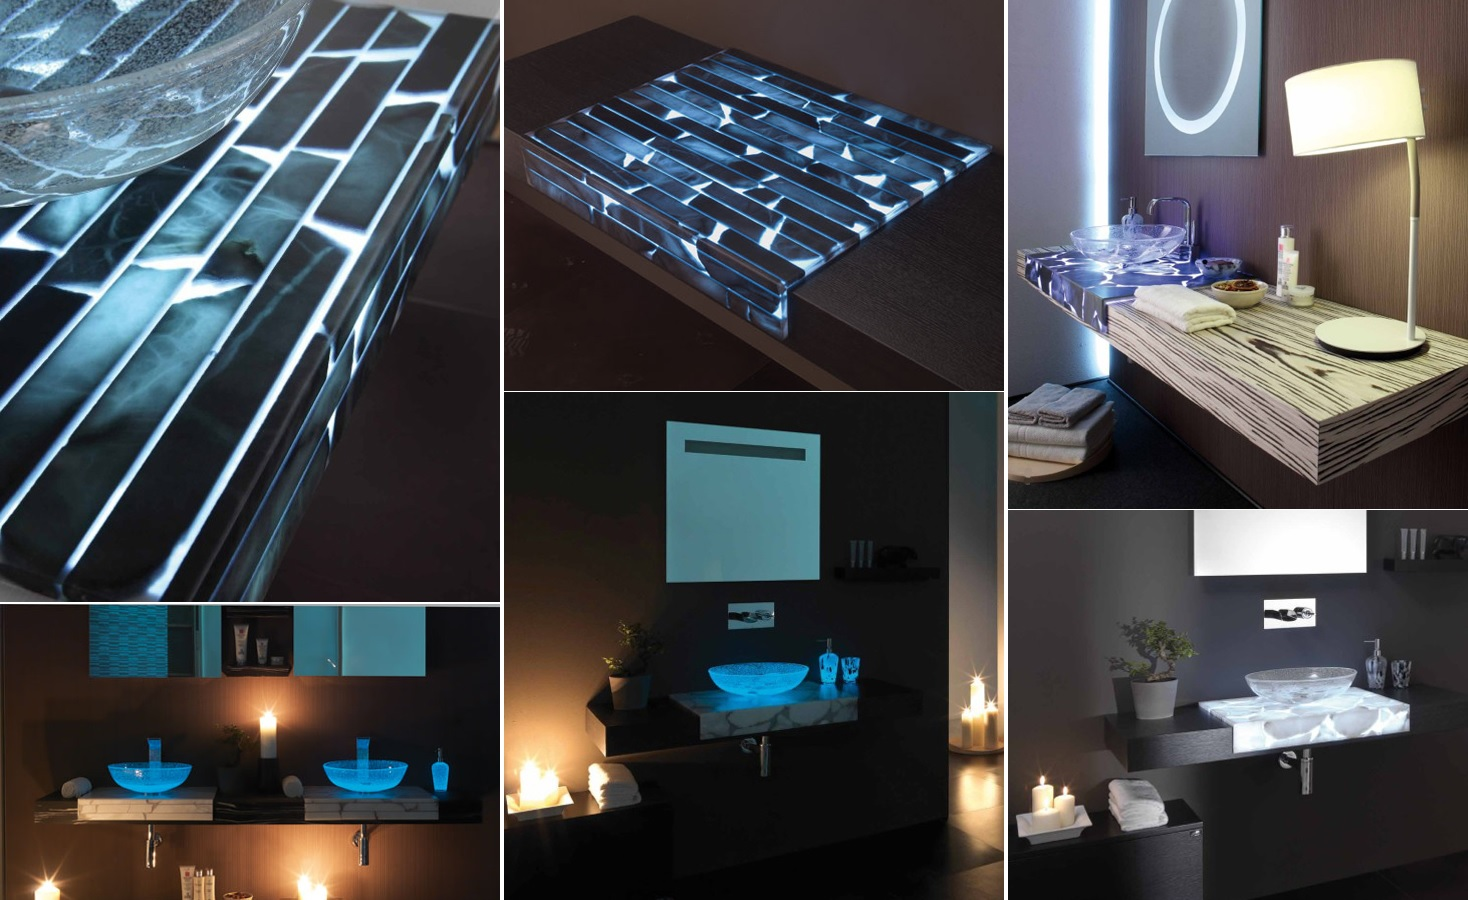 13 Glow In The Dark Features That Light Up Your Nights